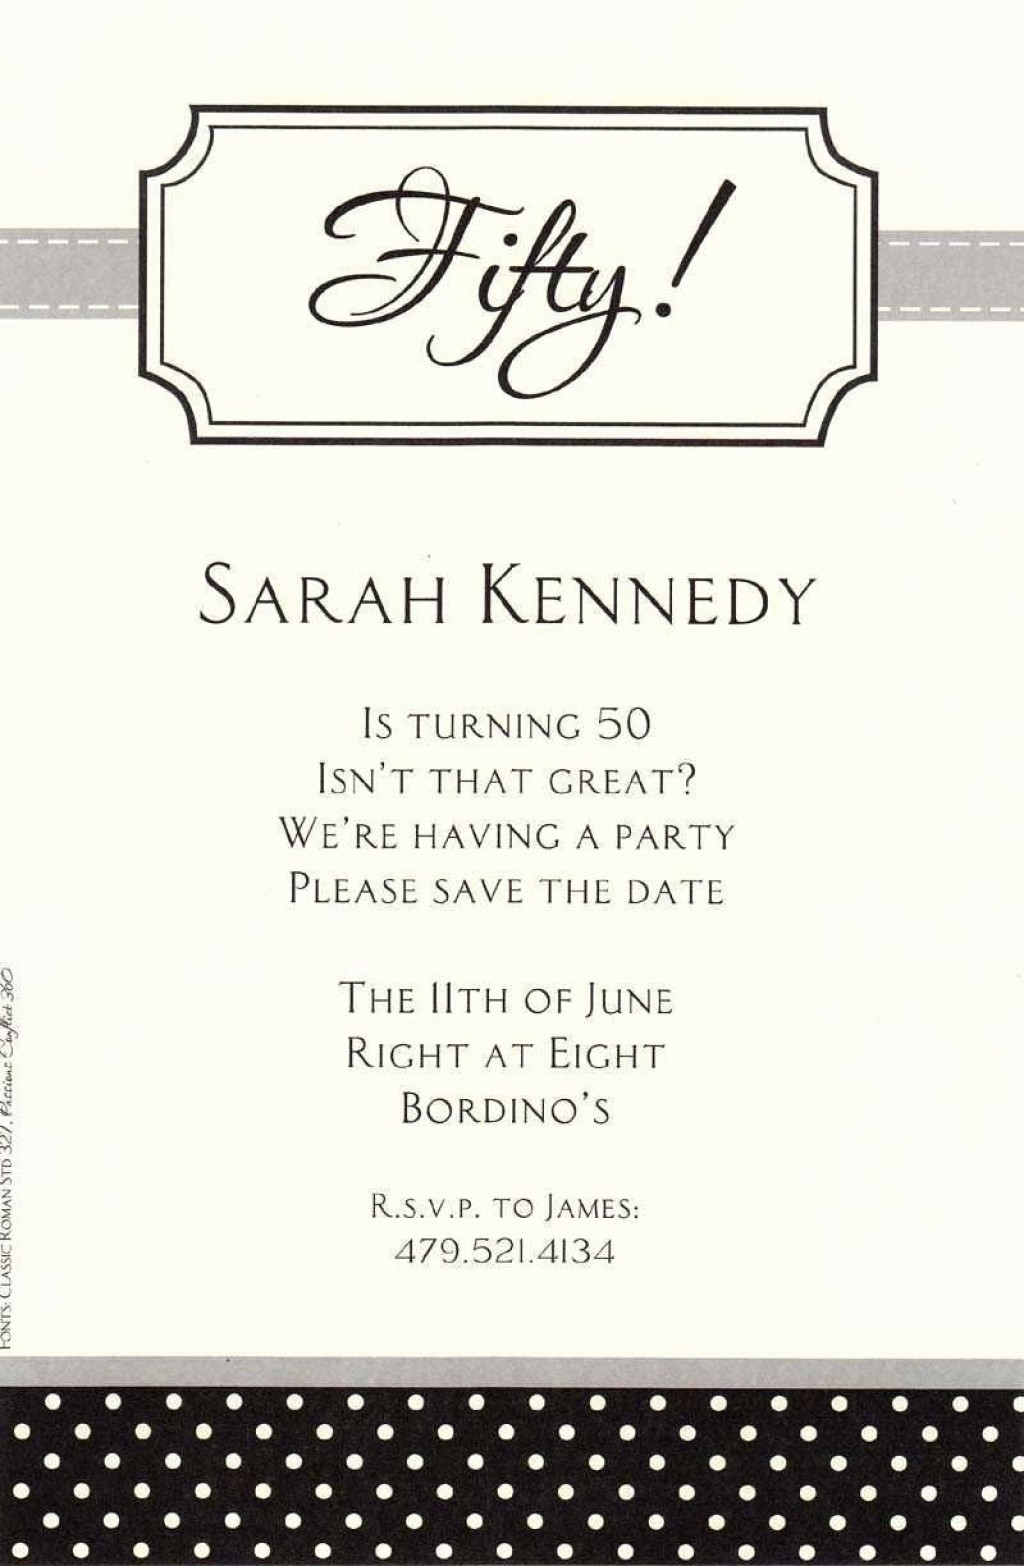 001 Striking Birthday Invitation Wording Example Photo  Examples Party Invite Brunch IdeaLarge